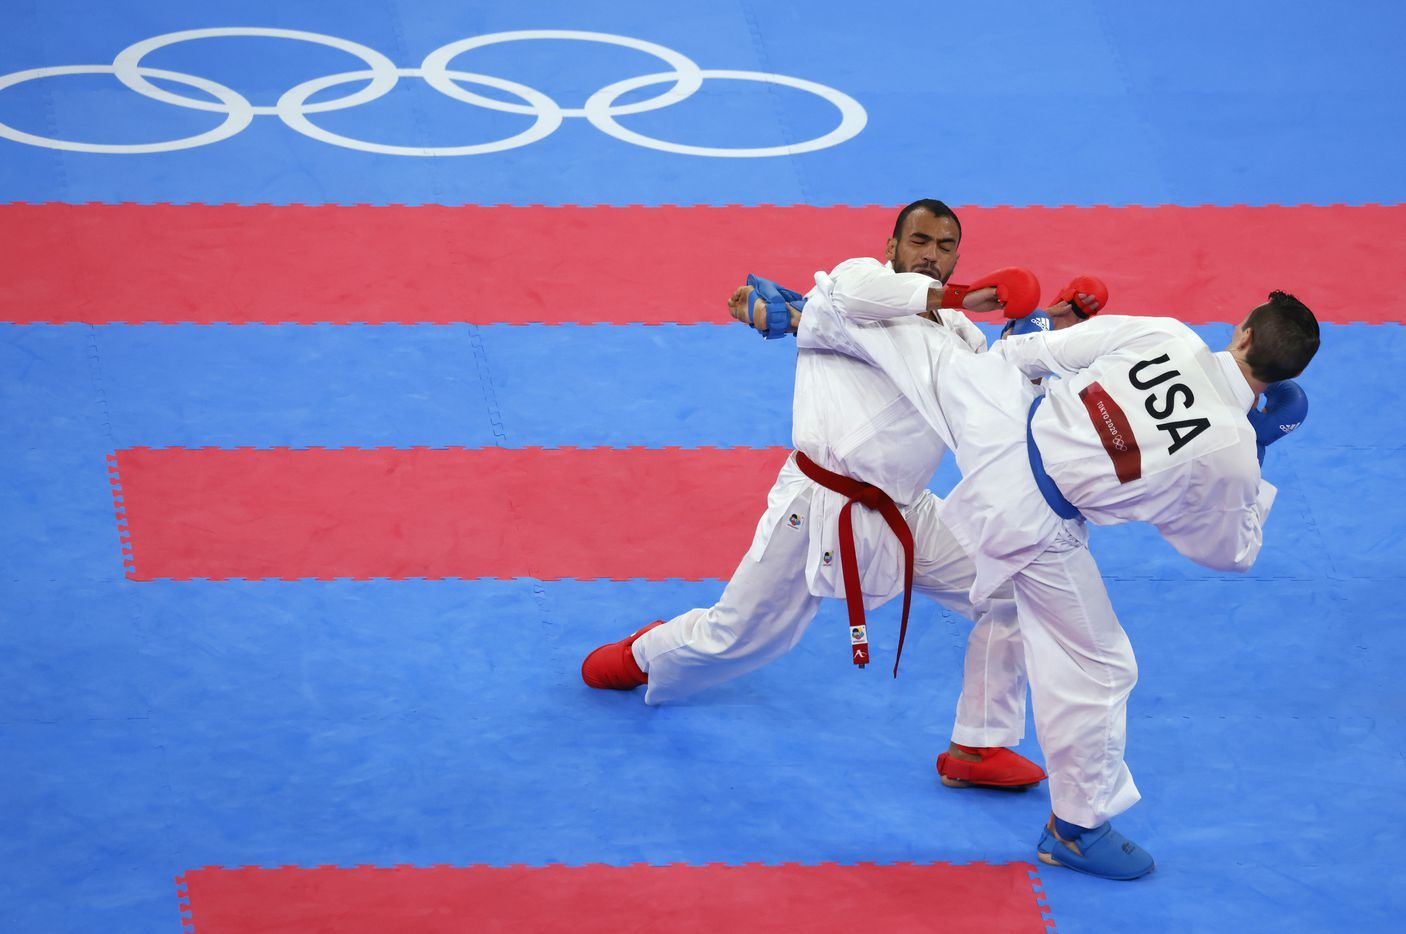 USA's Tom Scott competes against Egypt's Abdalla Abdelaziz during the karate men's kumite -75kg elimination round at the postponed 2020 Tokyo Olympics at Nippon Budokan, on Friday, August 6, 2021, in Tokyo, Japan. Scott defeated Abdelaziz 7-6. Scott finished in fourth place in his pool and did not advance to the next round. (Vernon Bryant/The Dallas Morning News)